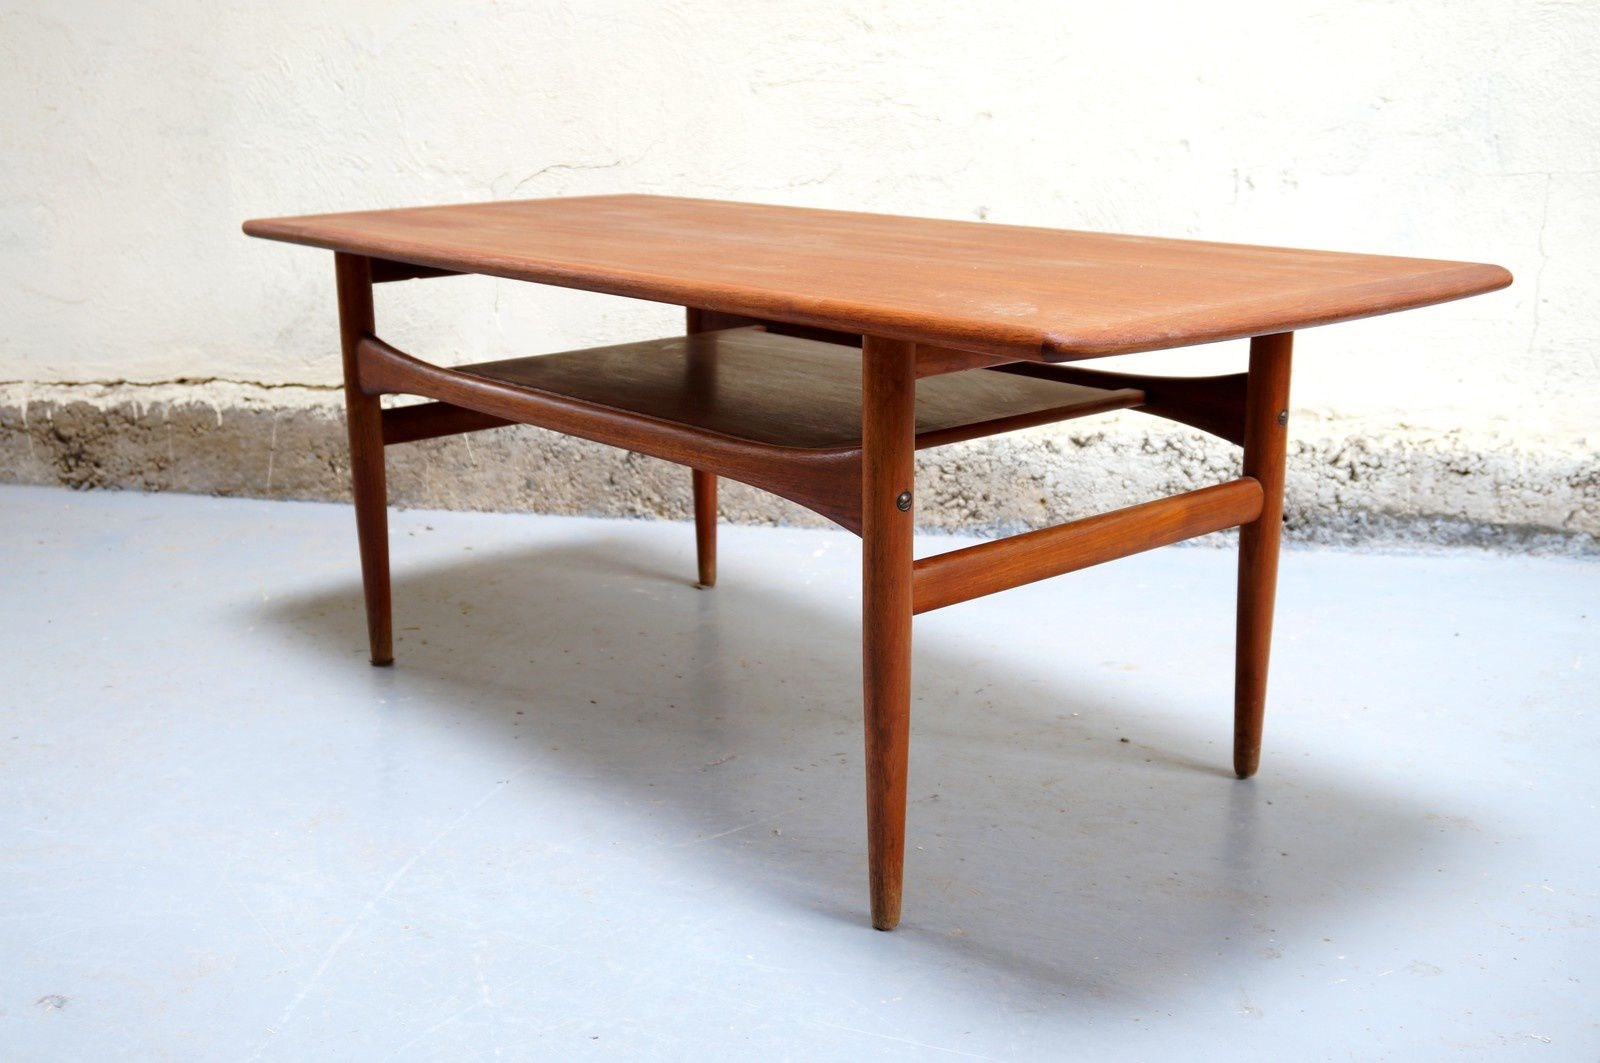 Table basse scandinave arrebo mobler danois vintage danish for Table basse scandinave made